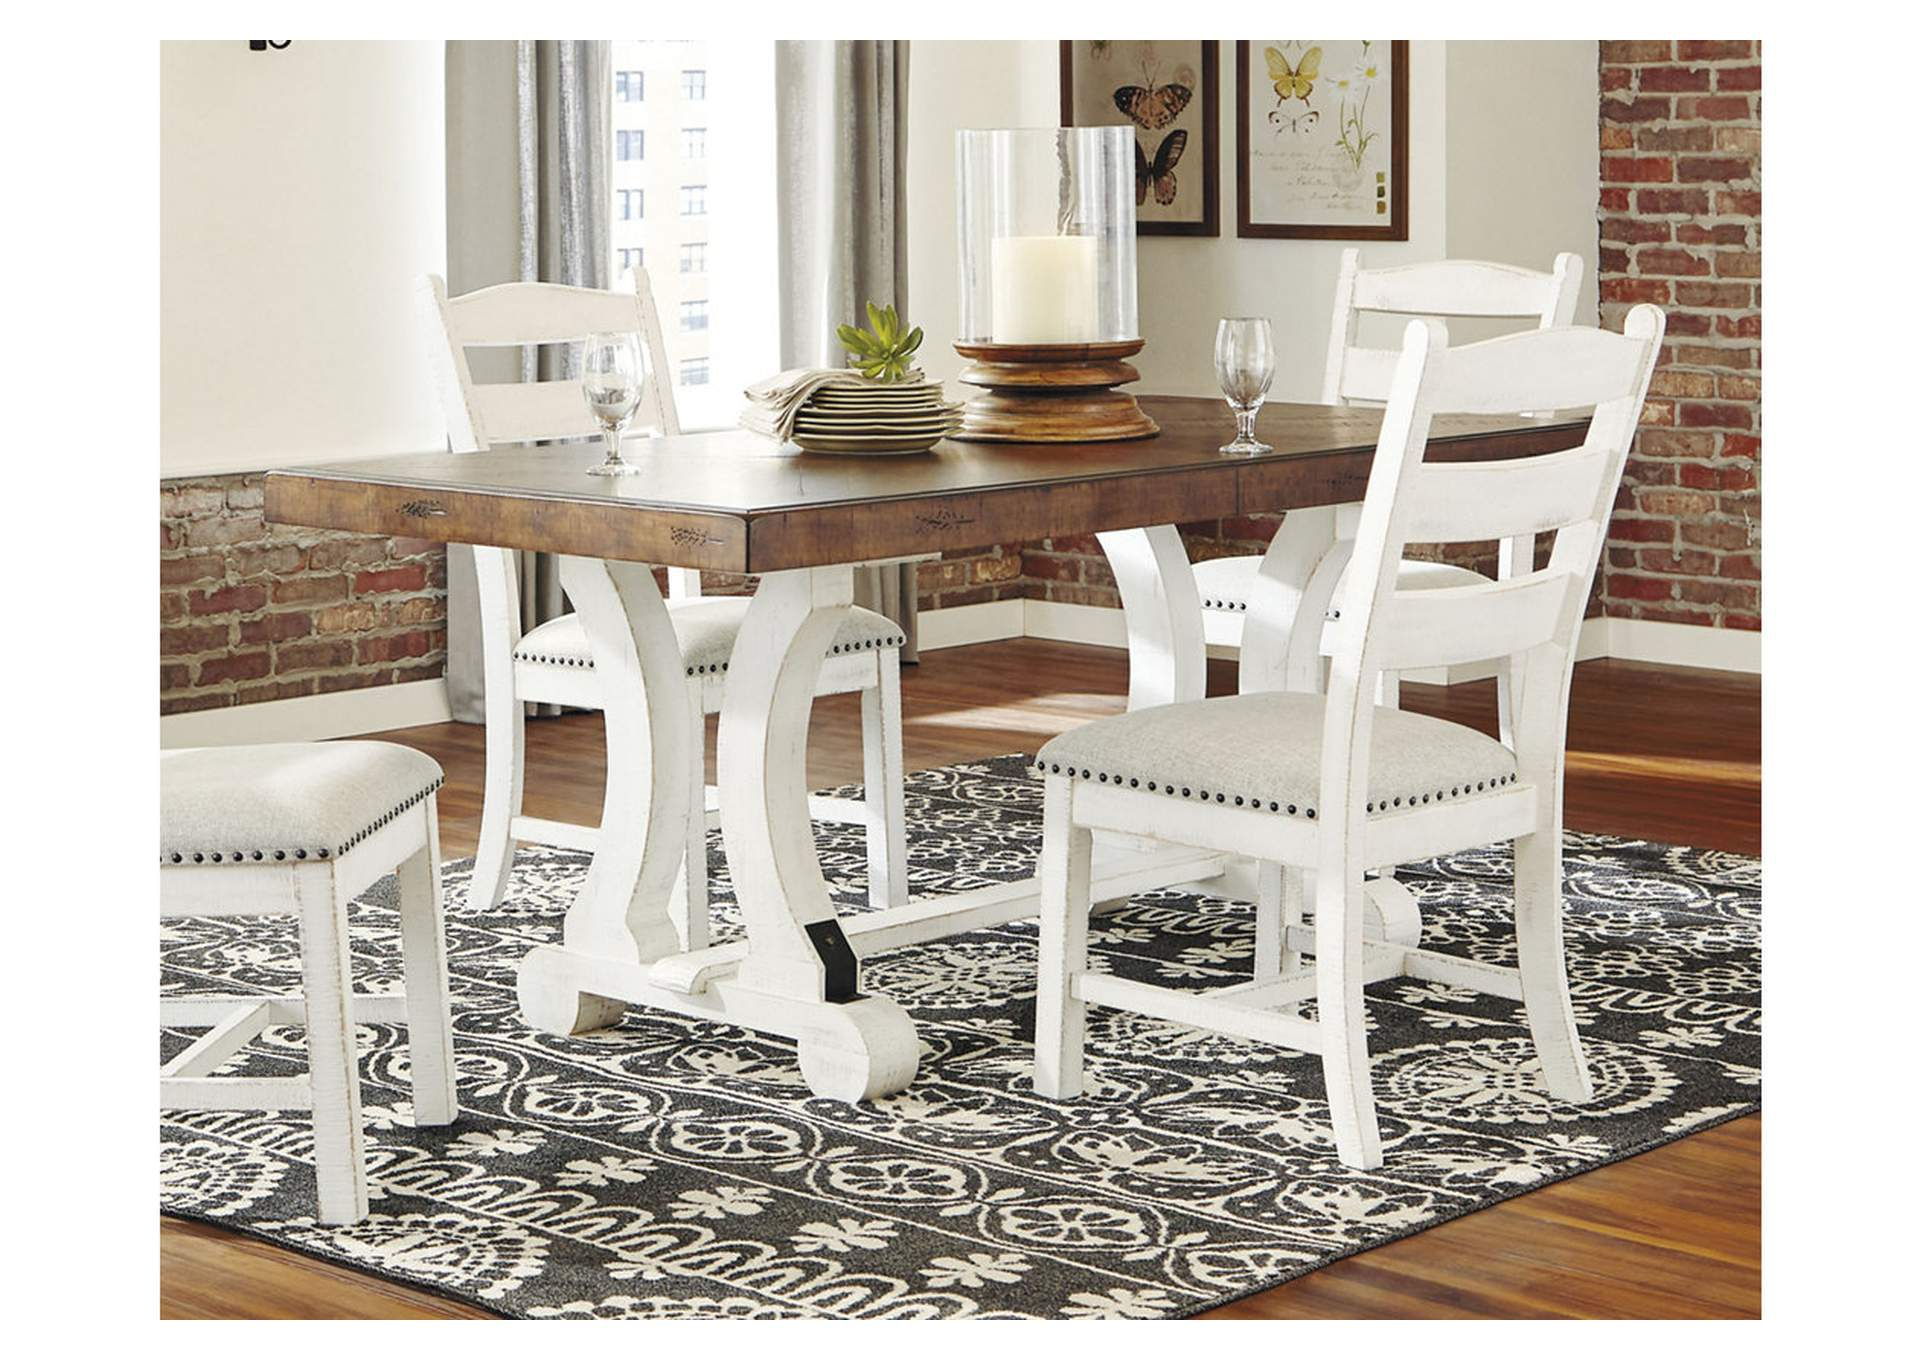 Valebeck White Brown Dining Table Homeline Furniture